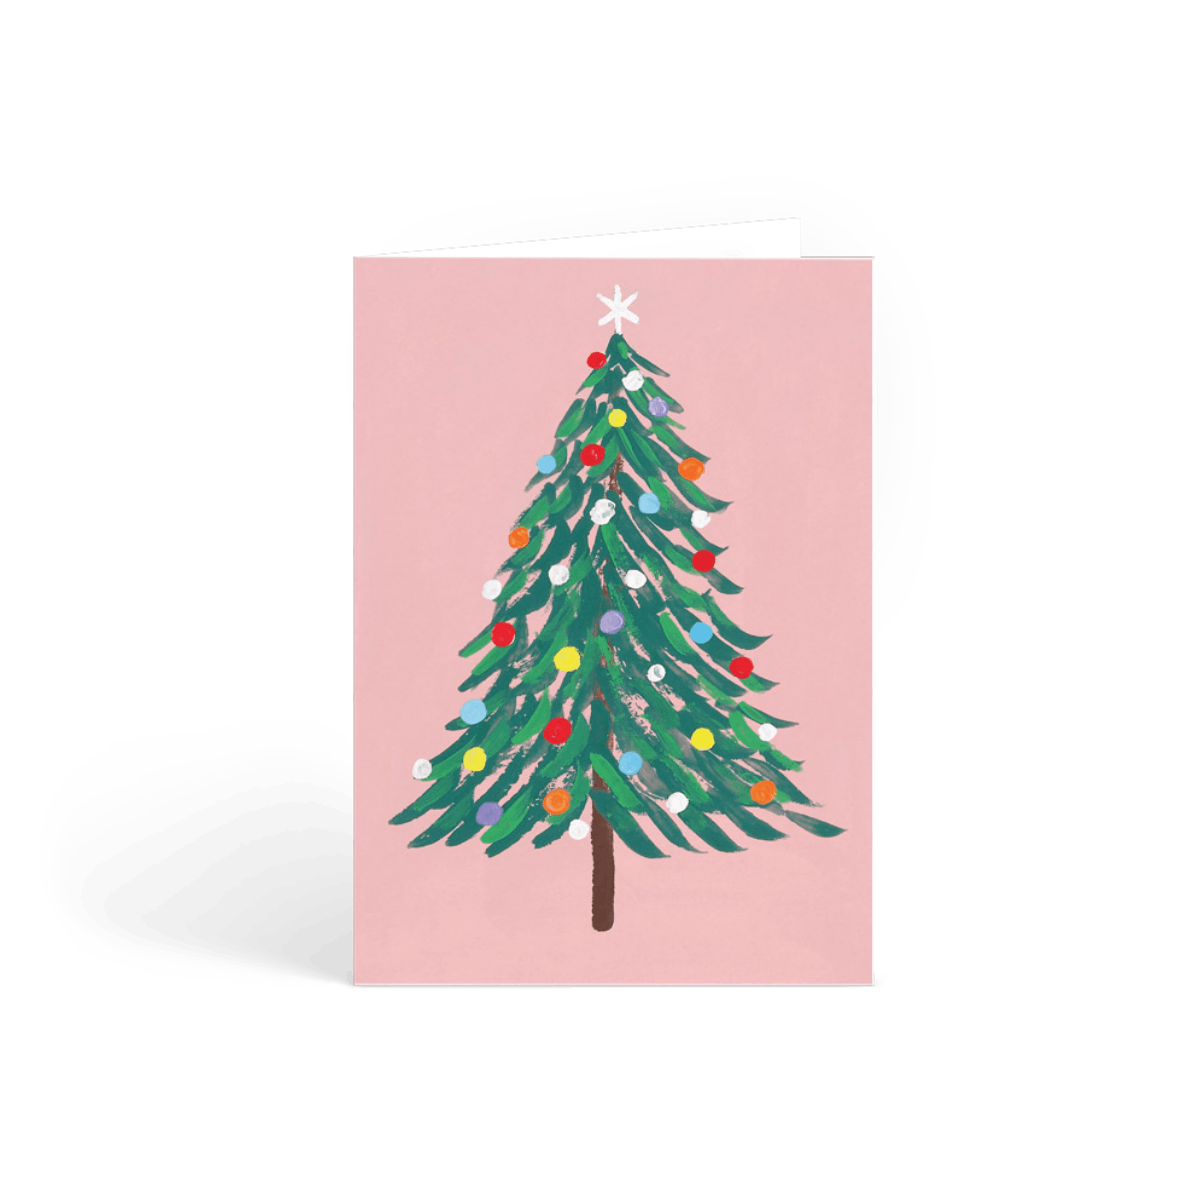 Https%3a%2f%2fwww.papier.com%2fproduct image%2f30521%2f2%2fchristmas baubles 7689 front 1570647908.png?ixlib=rb 1.1